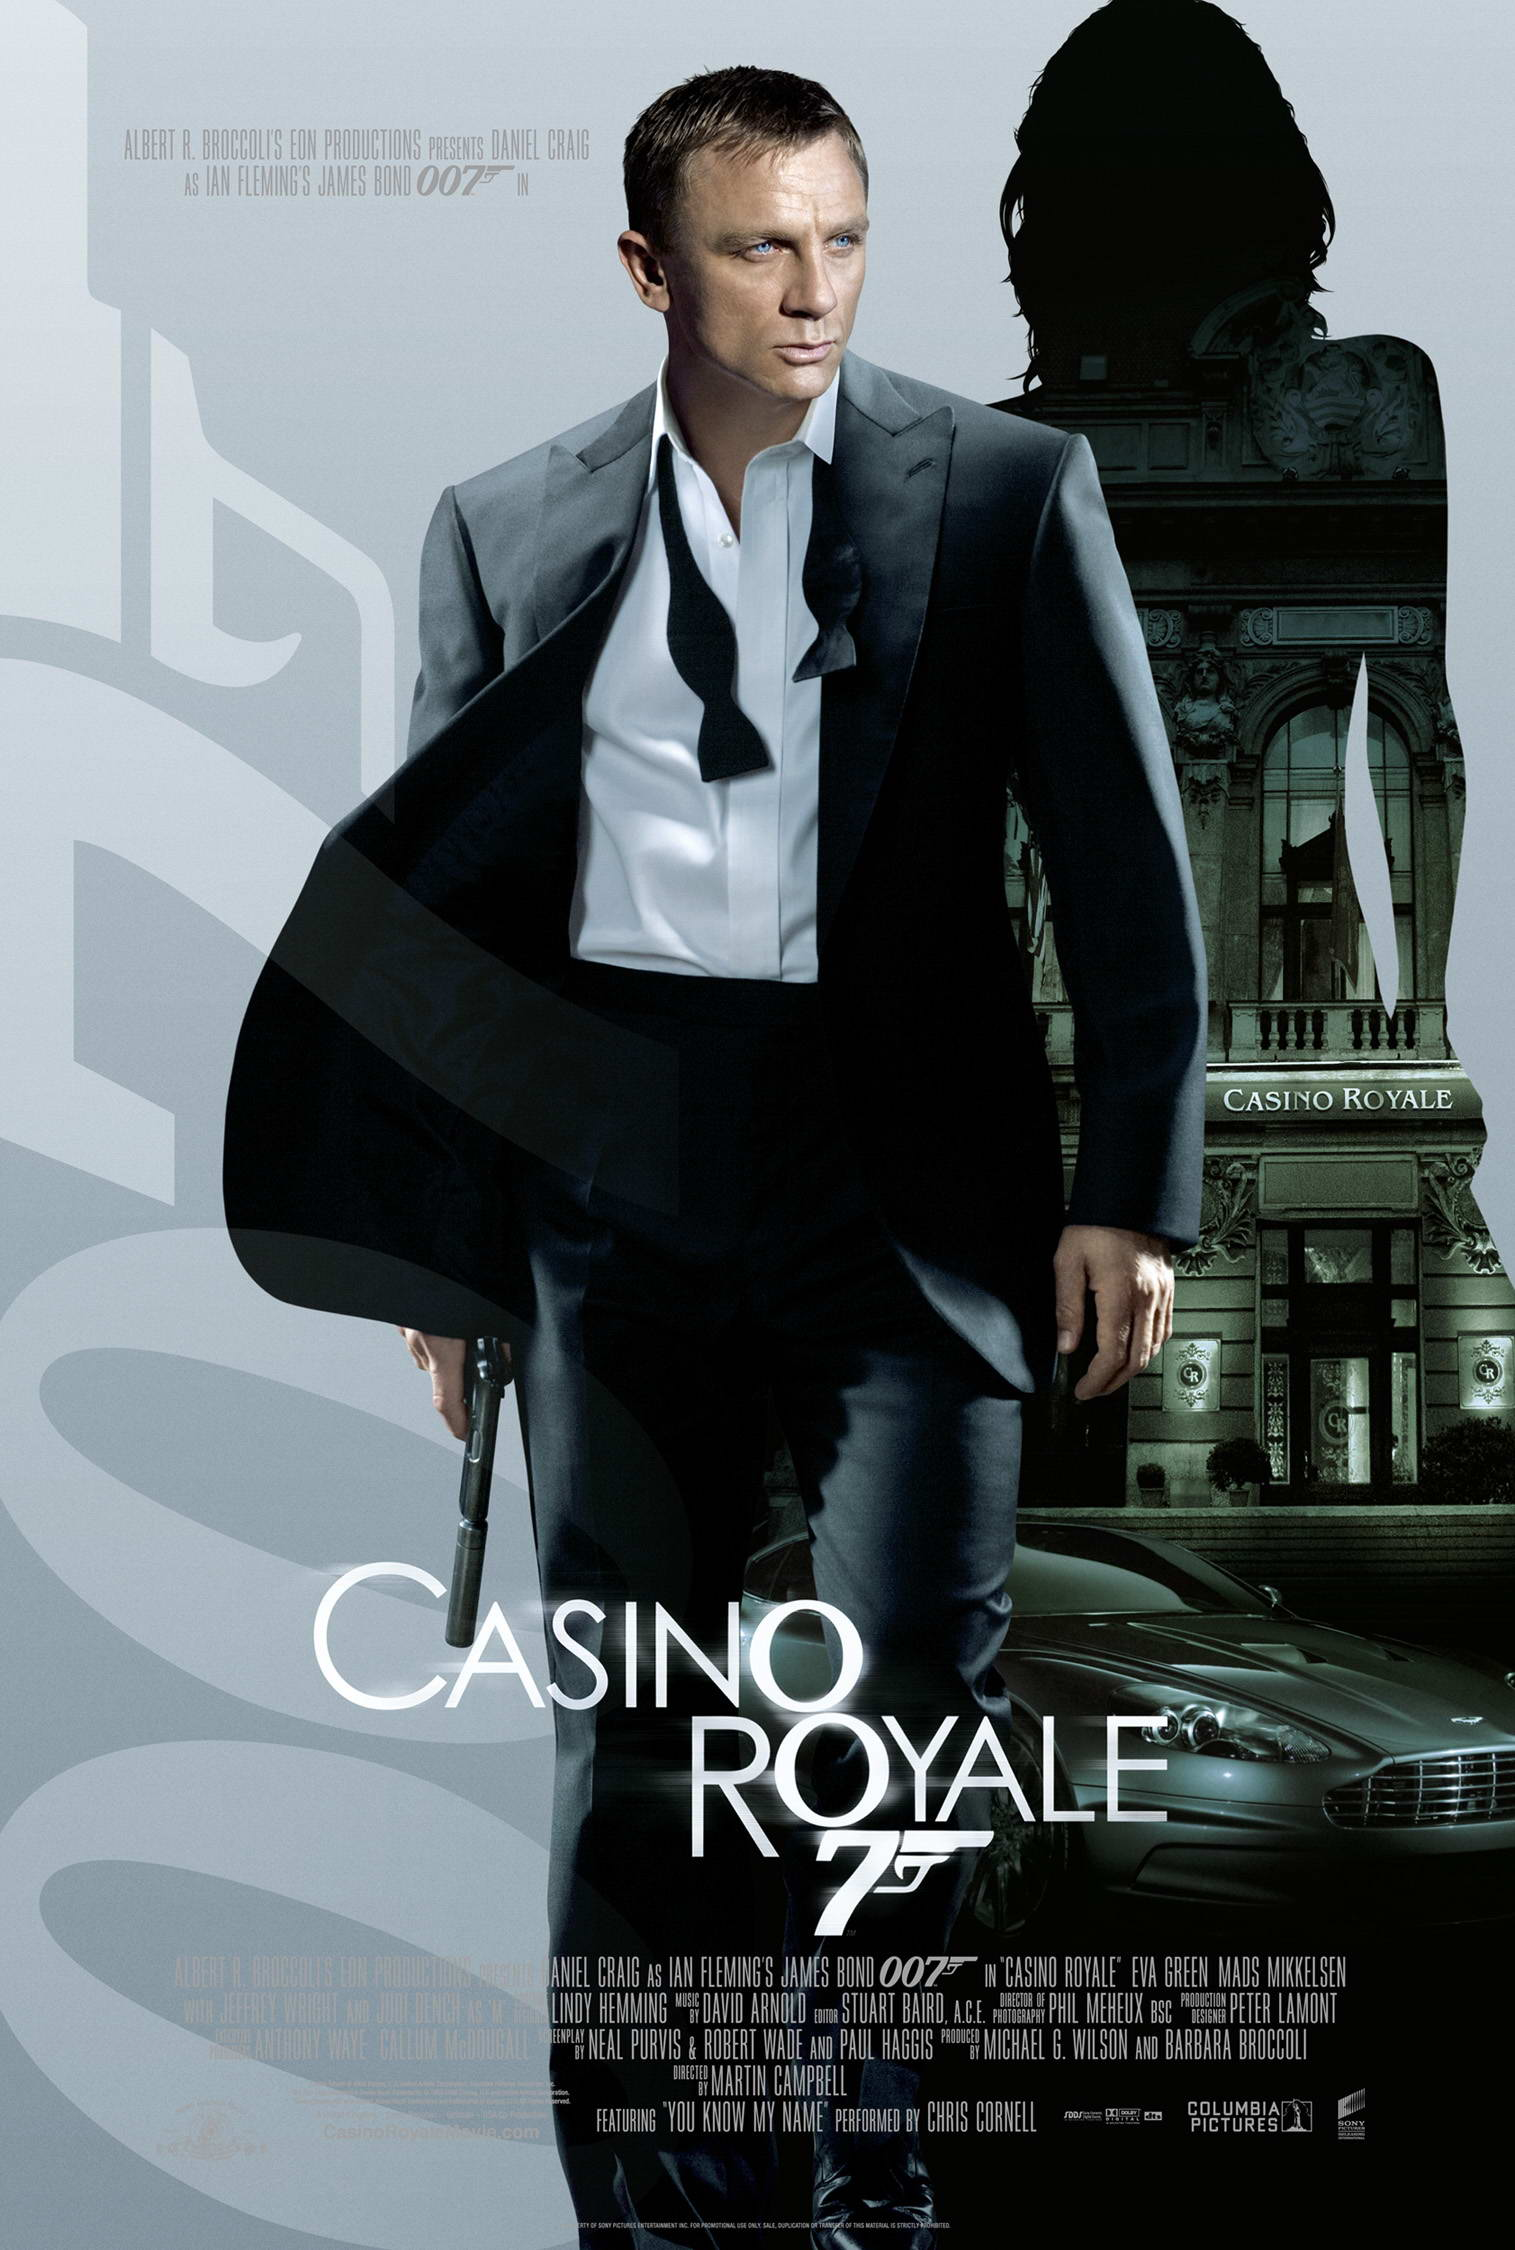 casino royale james bond full movie online sizzing hot